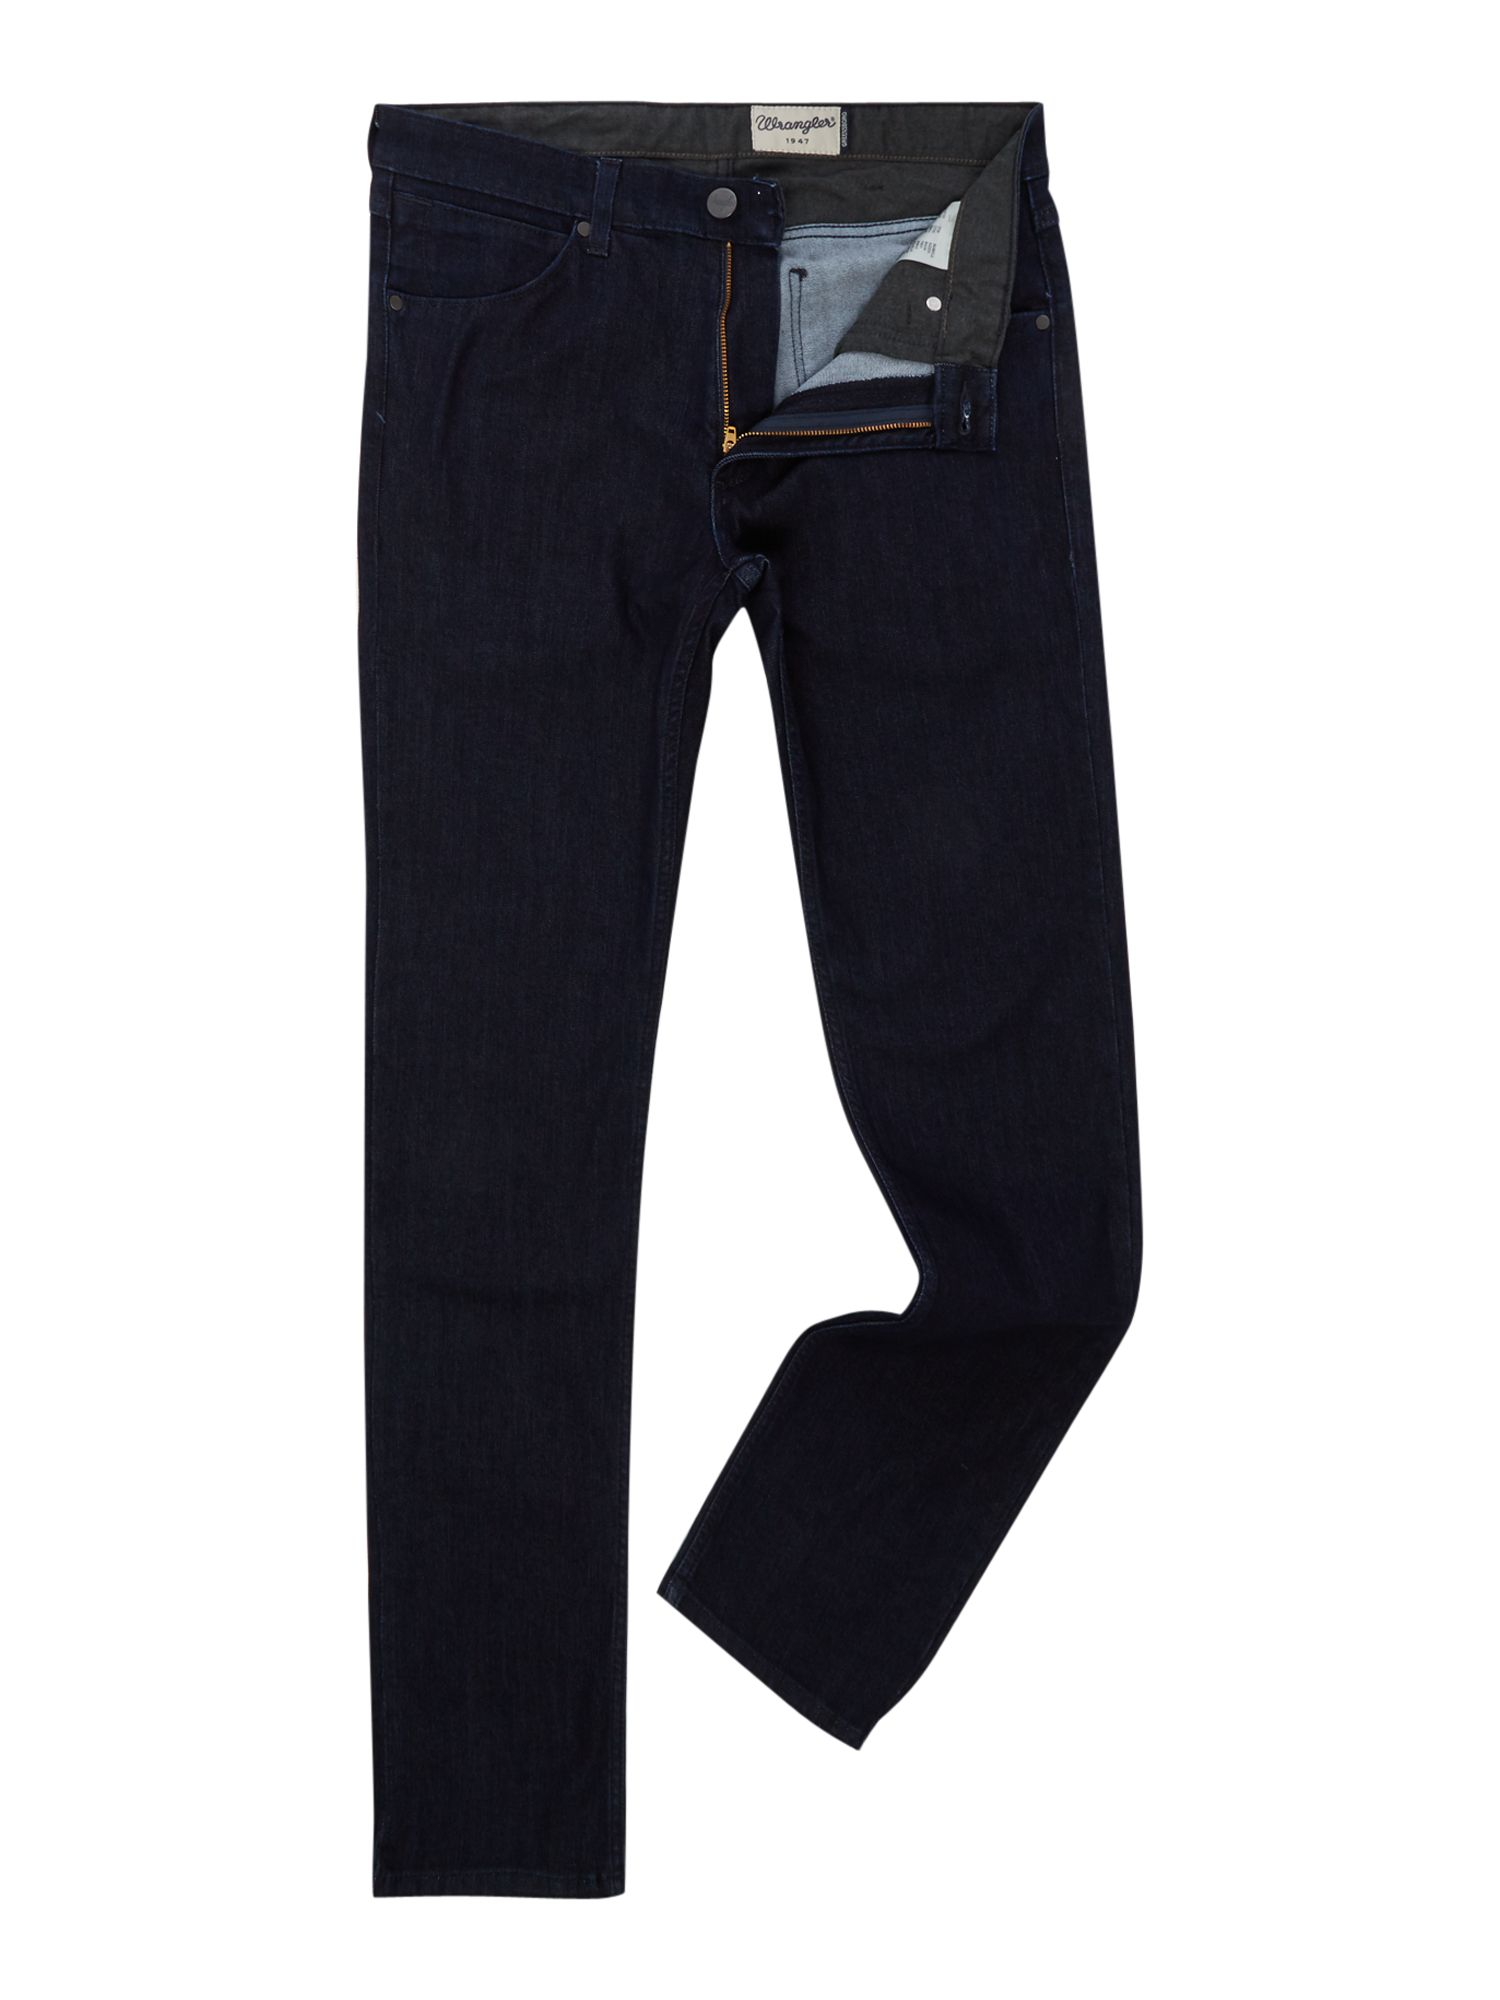 Mens Greensboro Regular Fit Indigo Jeans, Indigo